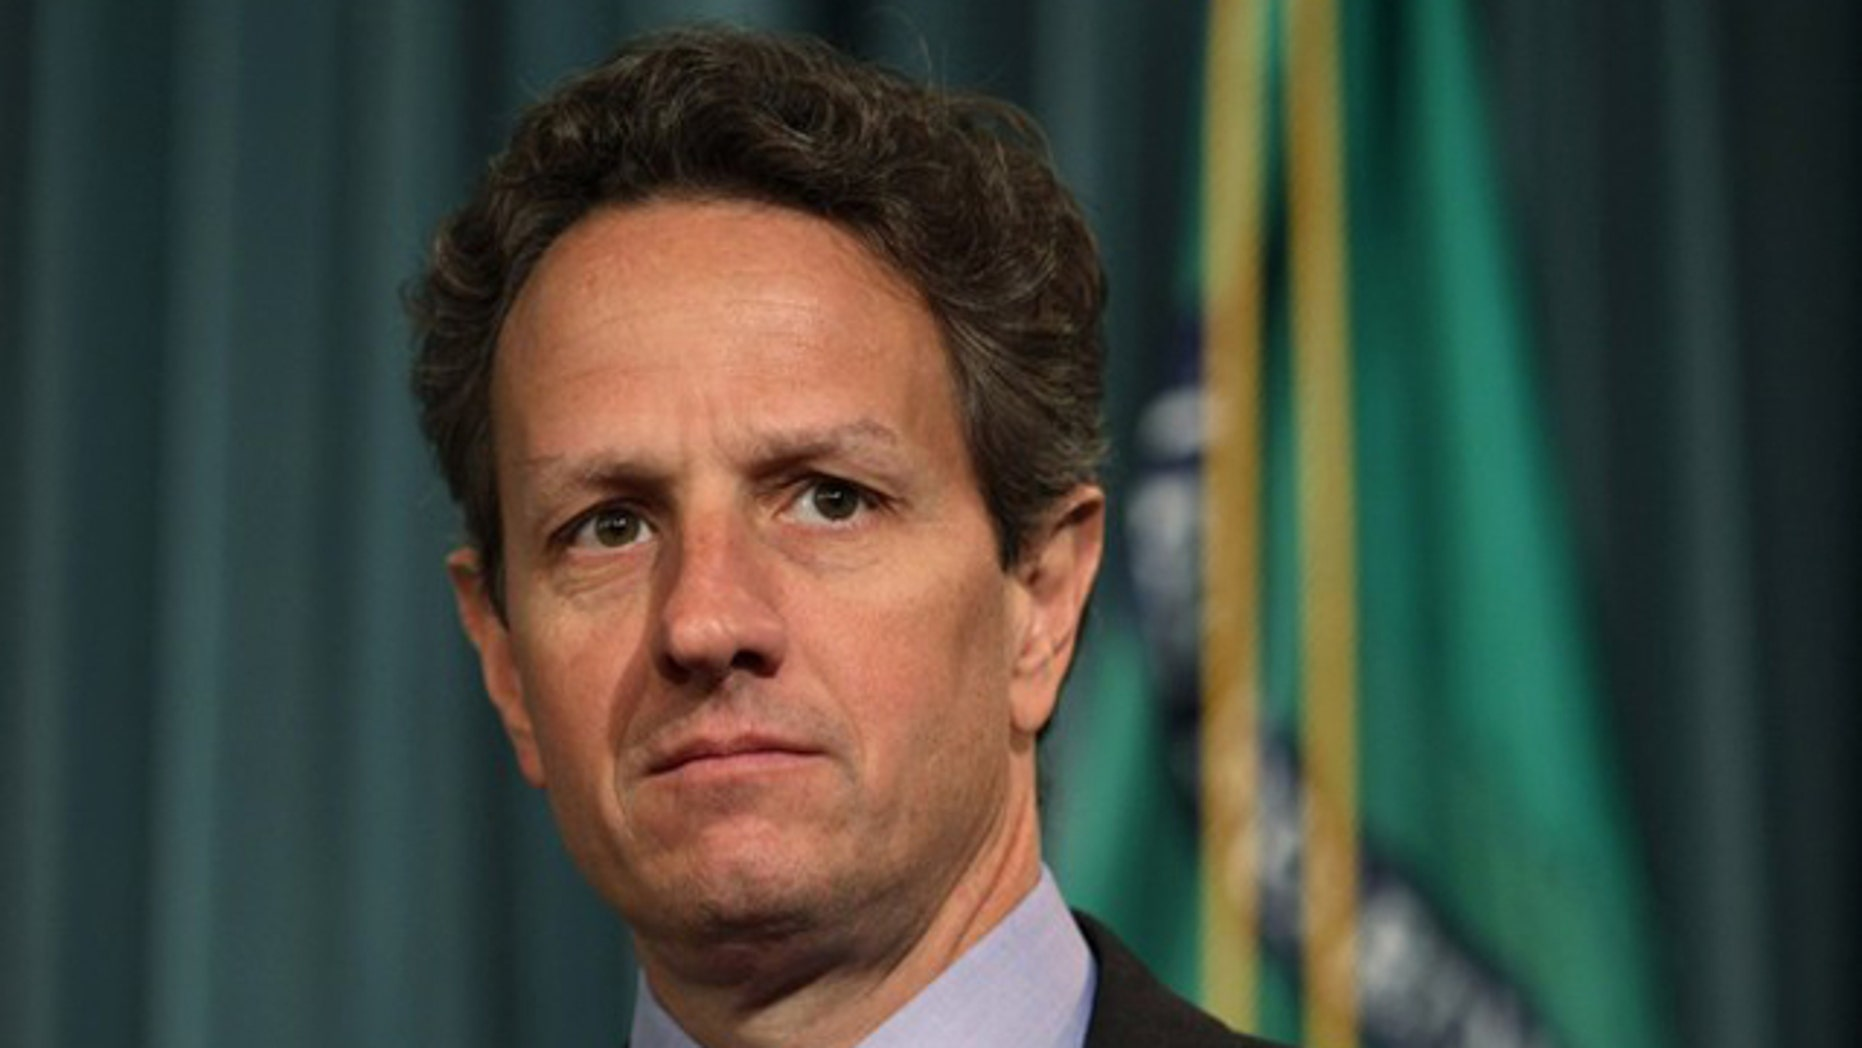 Treasury Secretary Timothy Geithner is pictured at a briefing at the Treasury Department in Washington May 13.